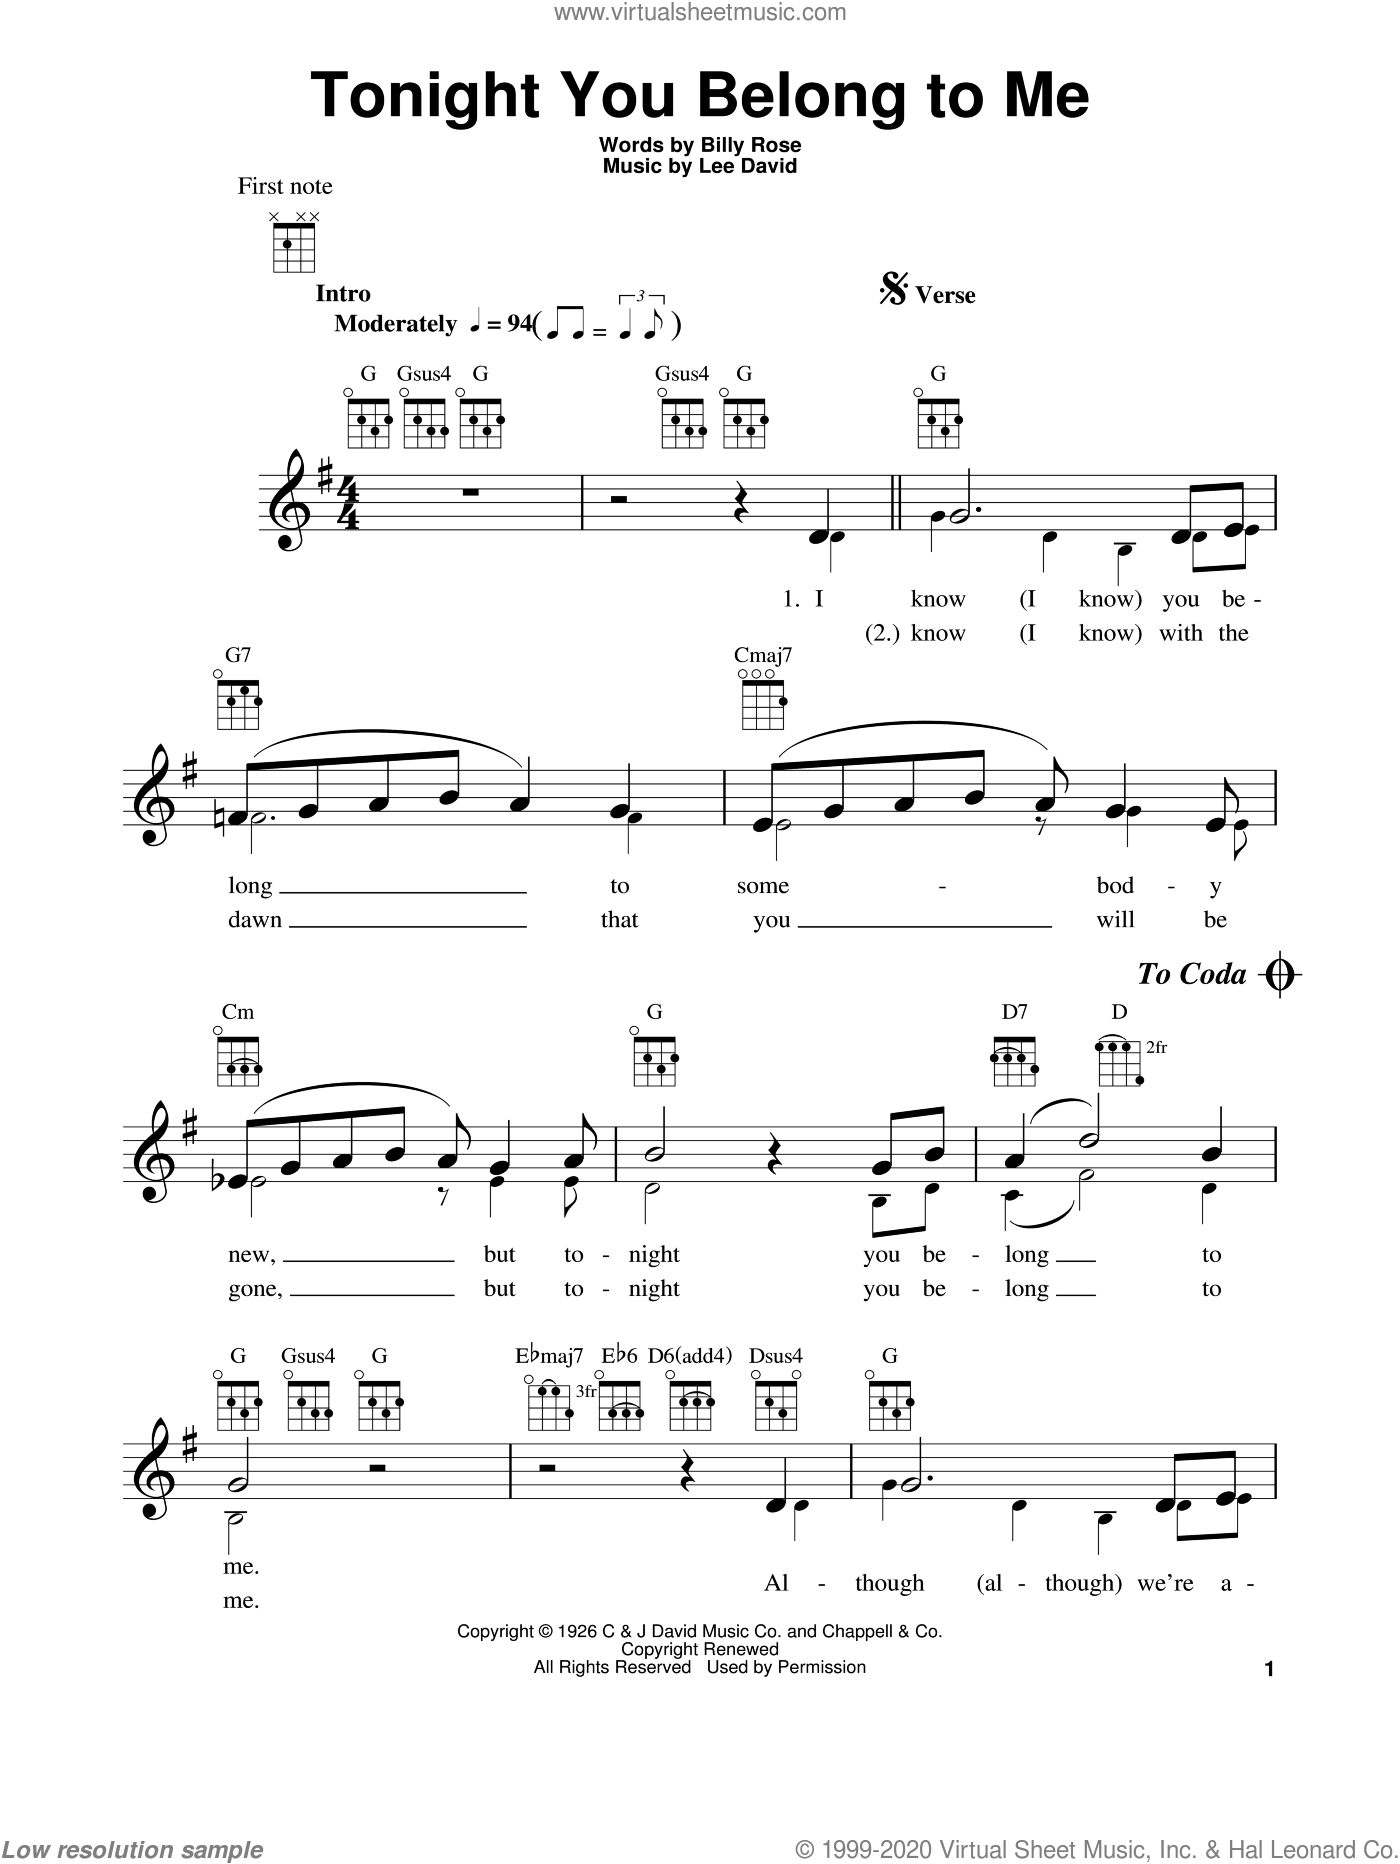 Tonight You Belong To Me sheet music for ukulele by Patience & Prudence, Billy Rose and Lee David, intermediate skill level